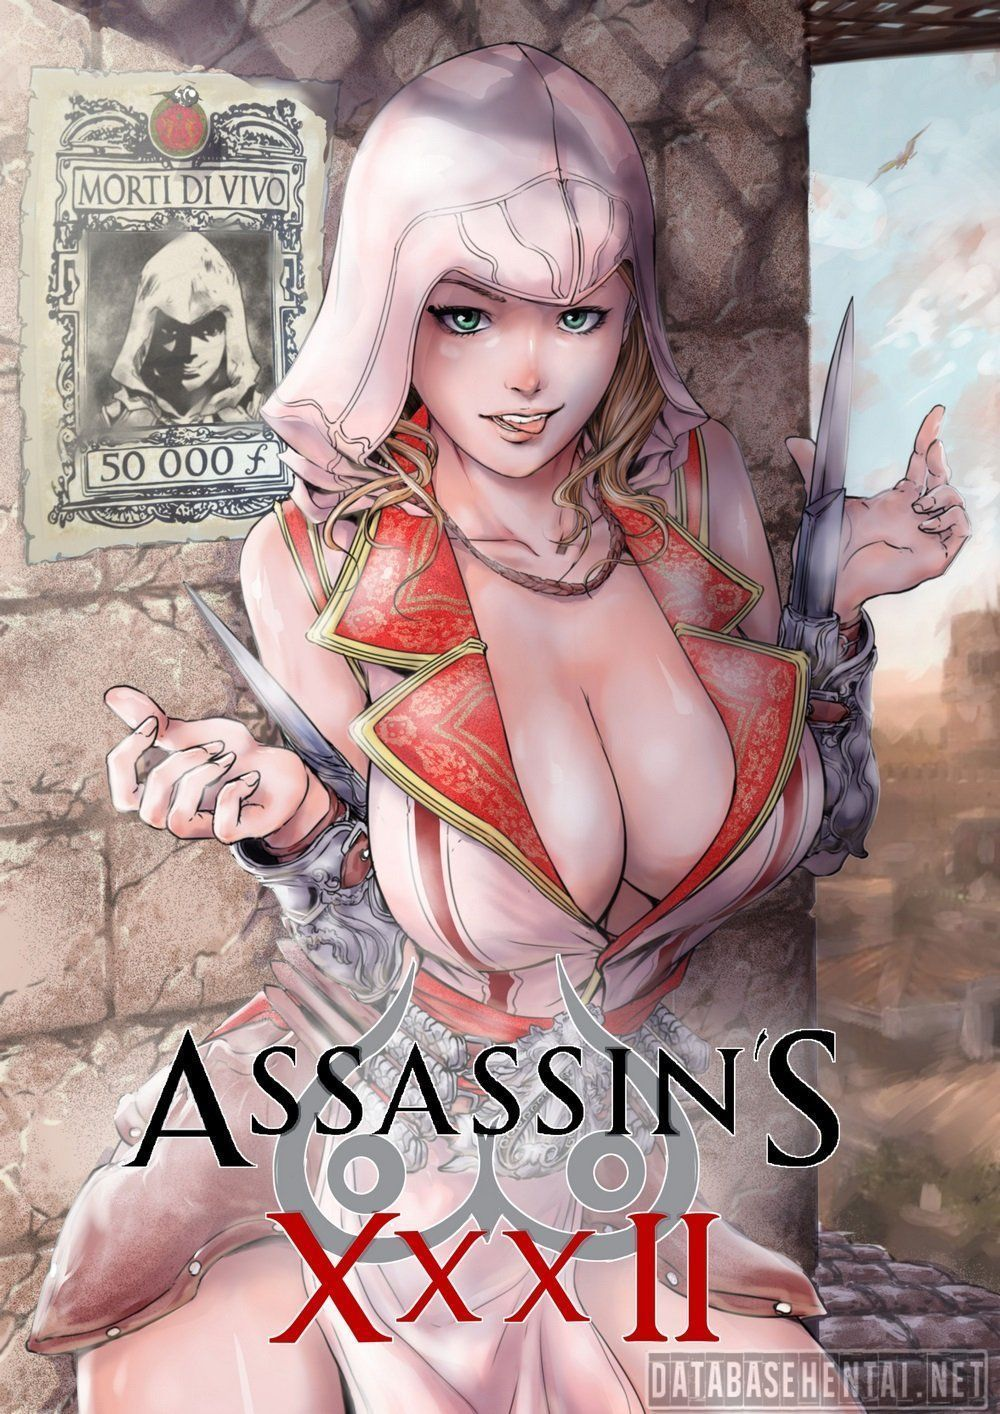 A-bela-assassina-1